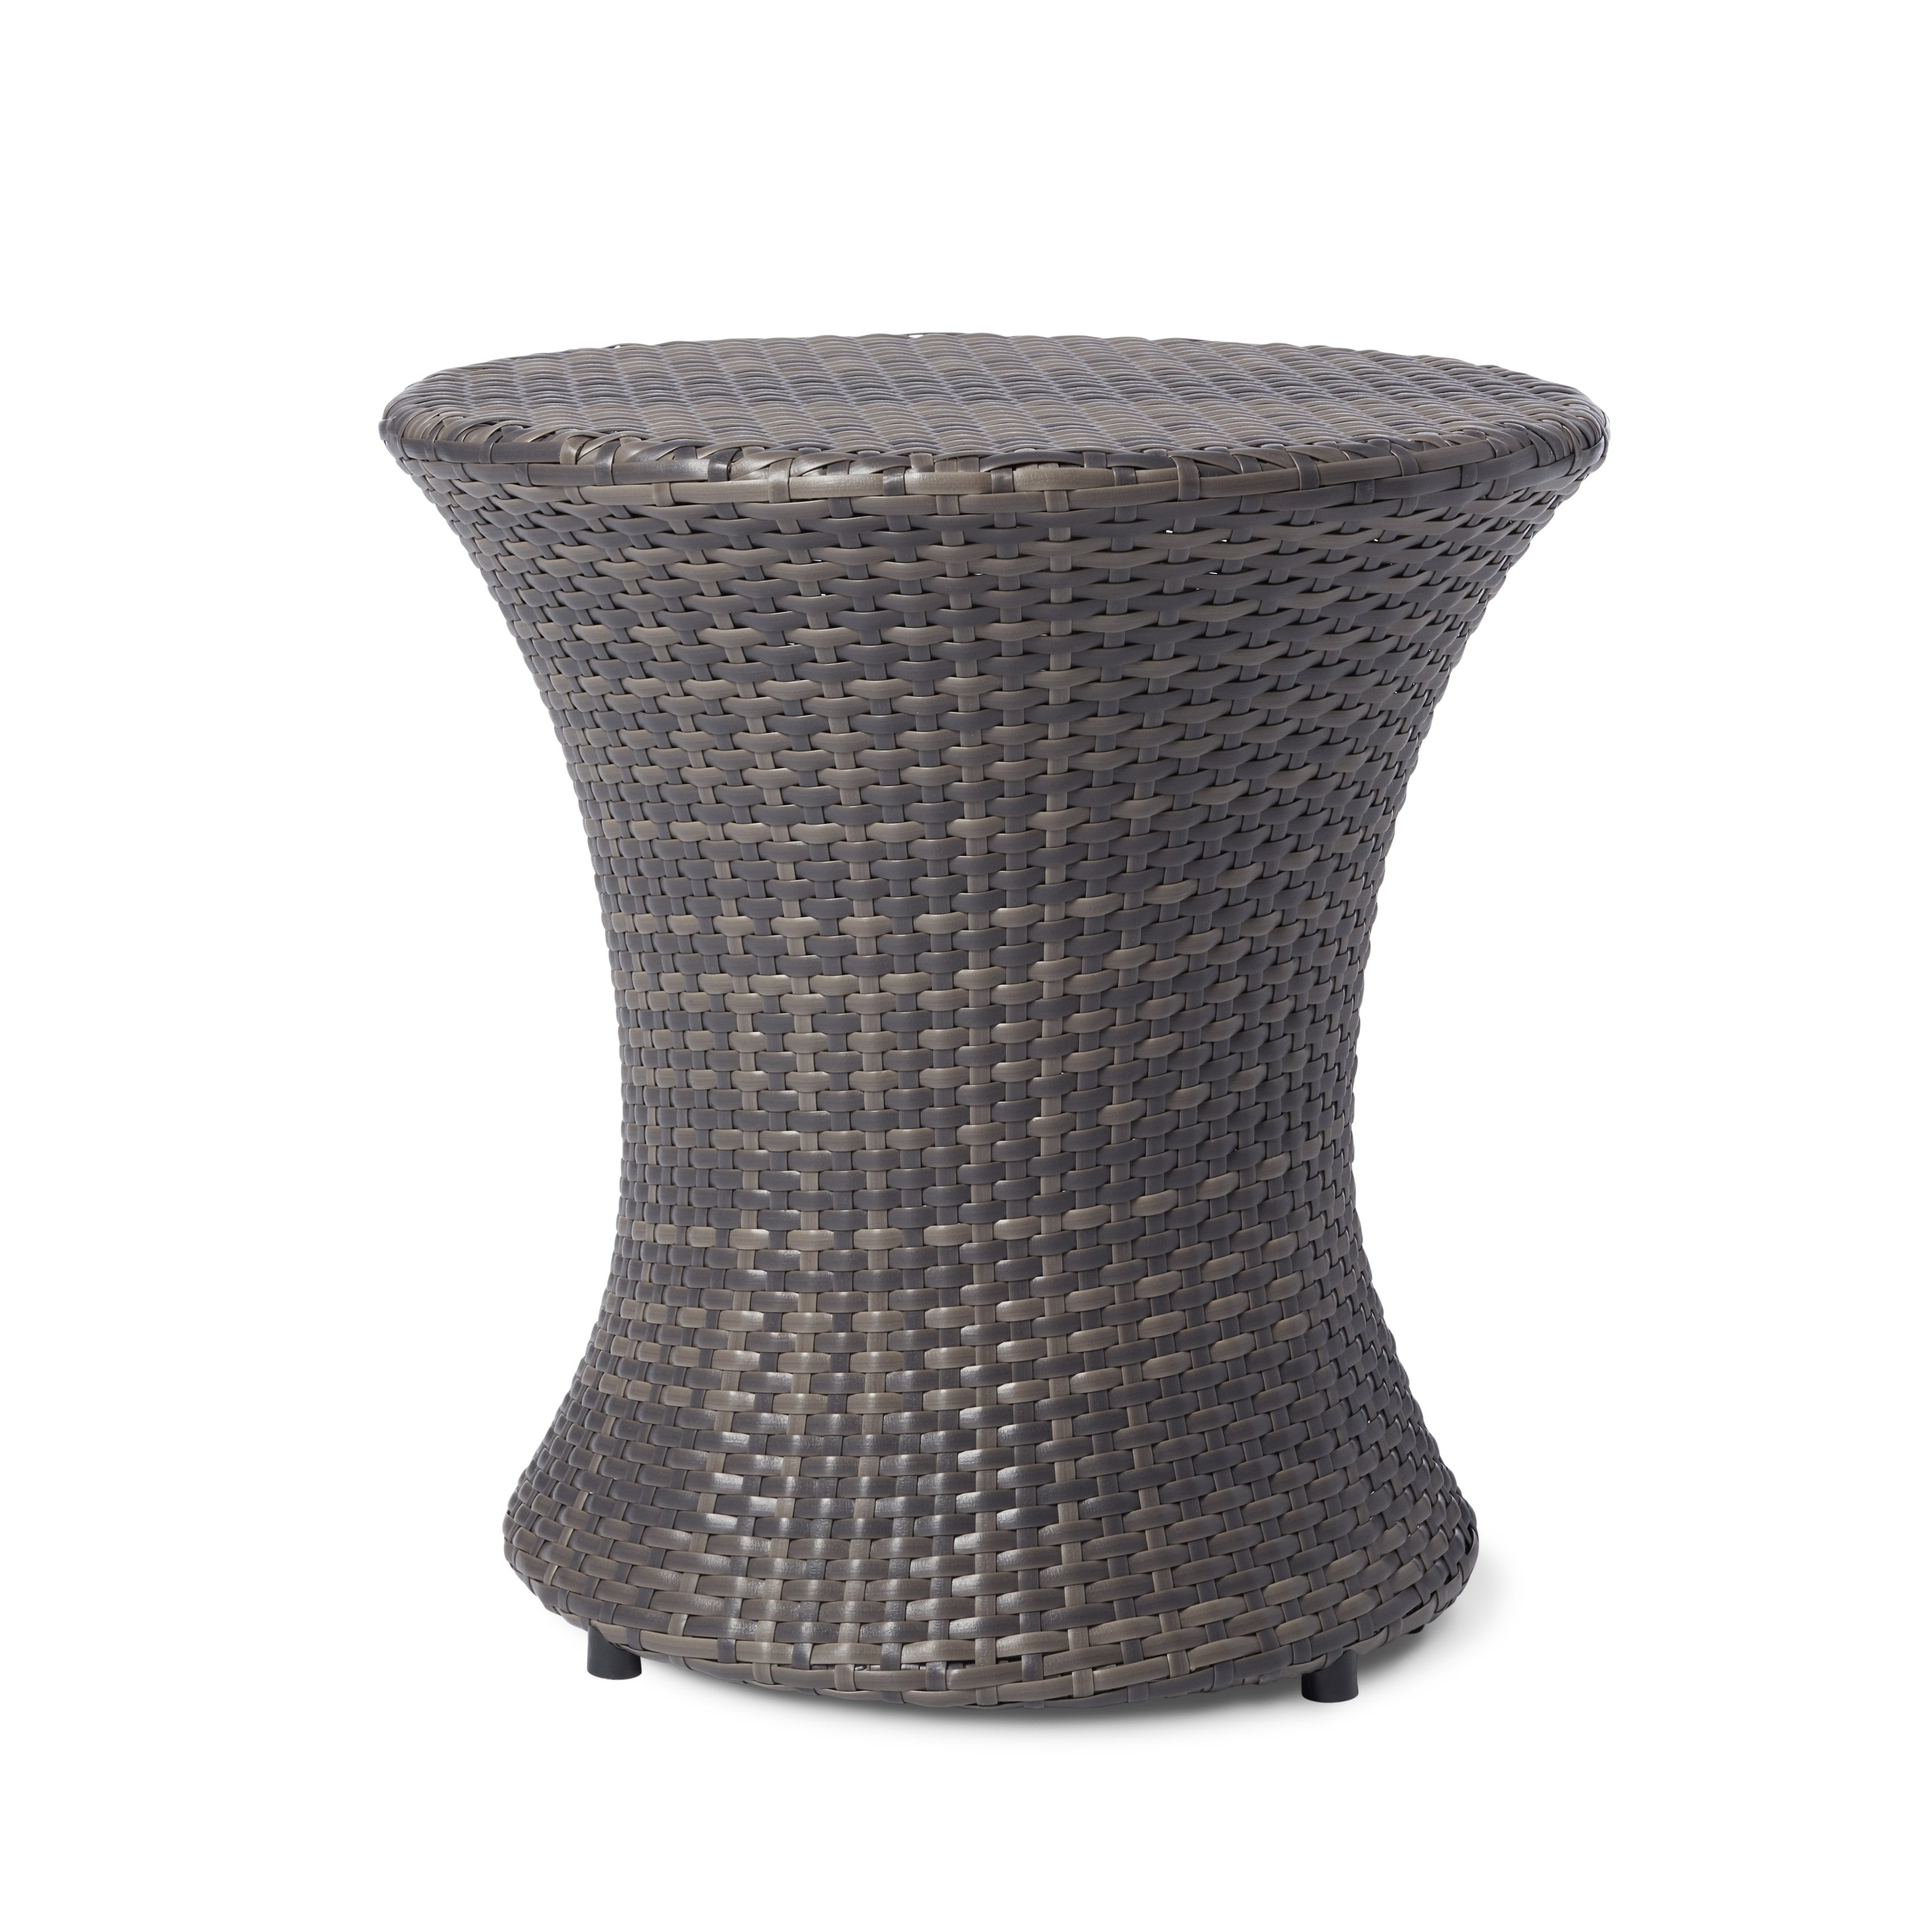 brown outdoor coffee side tables our adriana wicker table christopher knight home bombay outdoors pineapple umbrella accent best patio furniture beach themed lamps red runner and